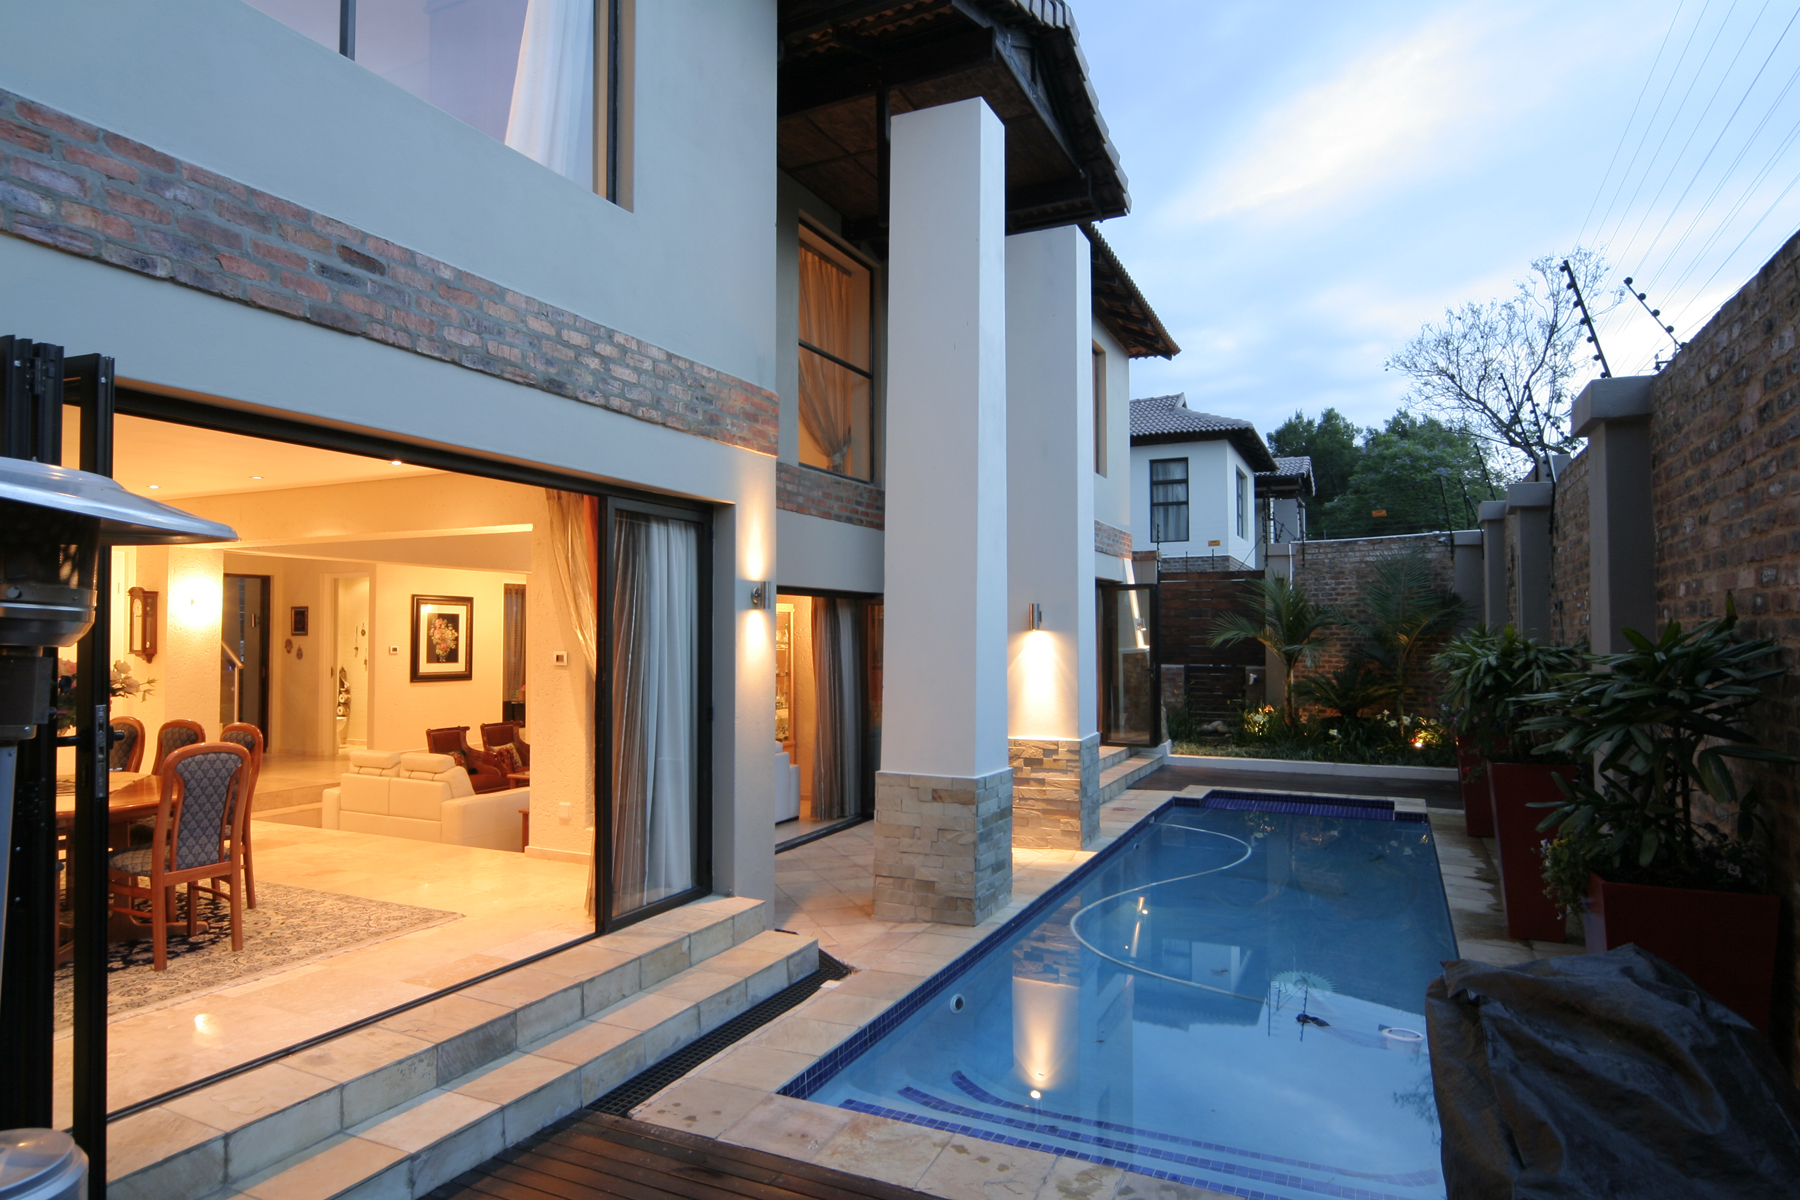 Single Family Home for Sale at Sandown Sandown, Johannesburg, Gauteng South Africa